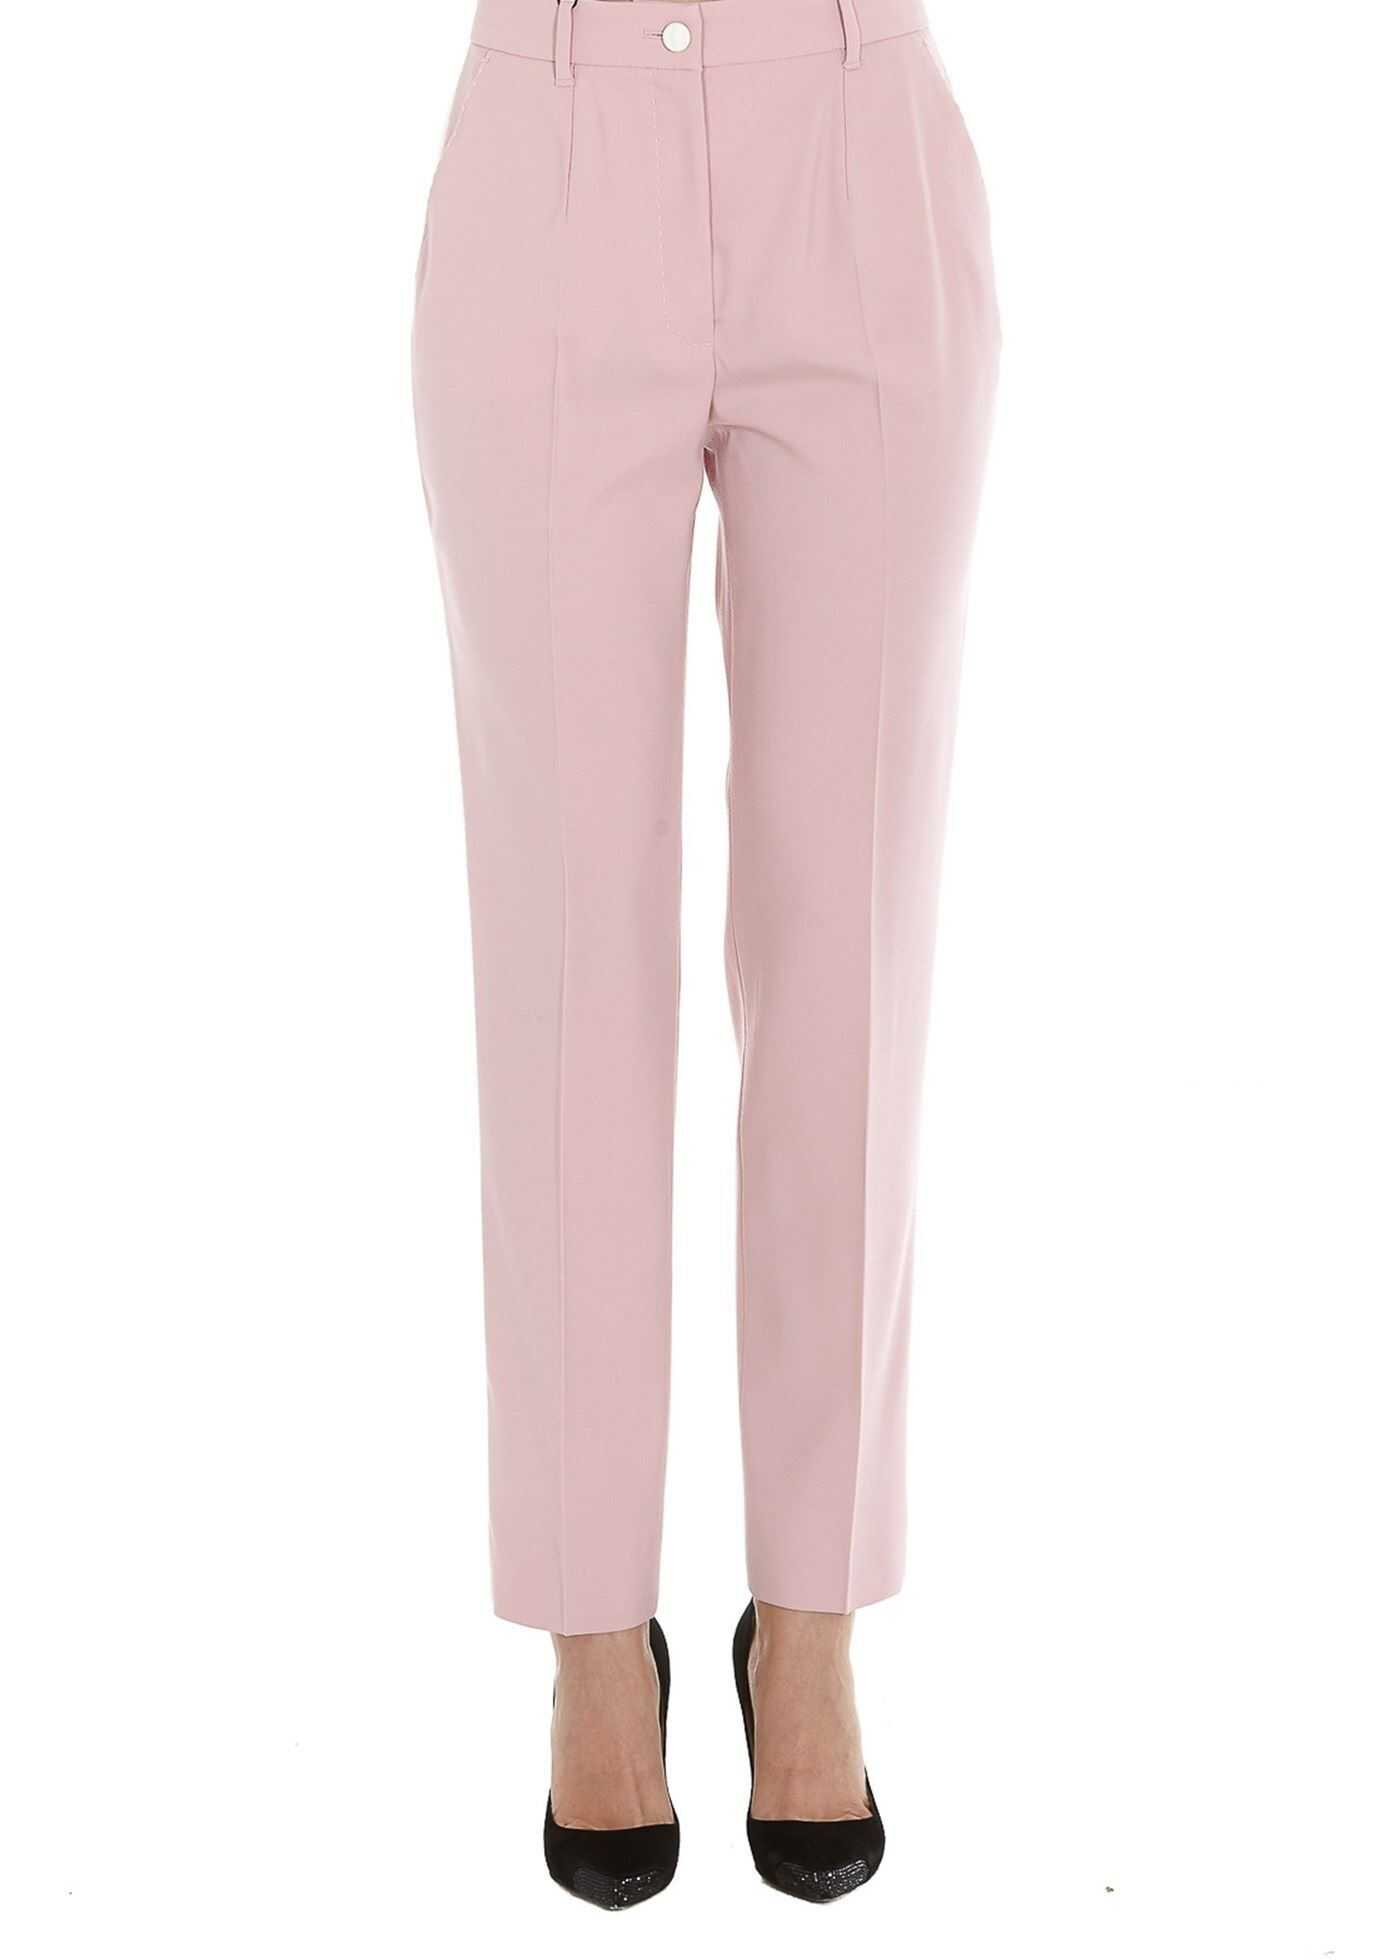 Dolce & Gabbana Wool Trousers With Contrasting Bands Pink